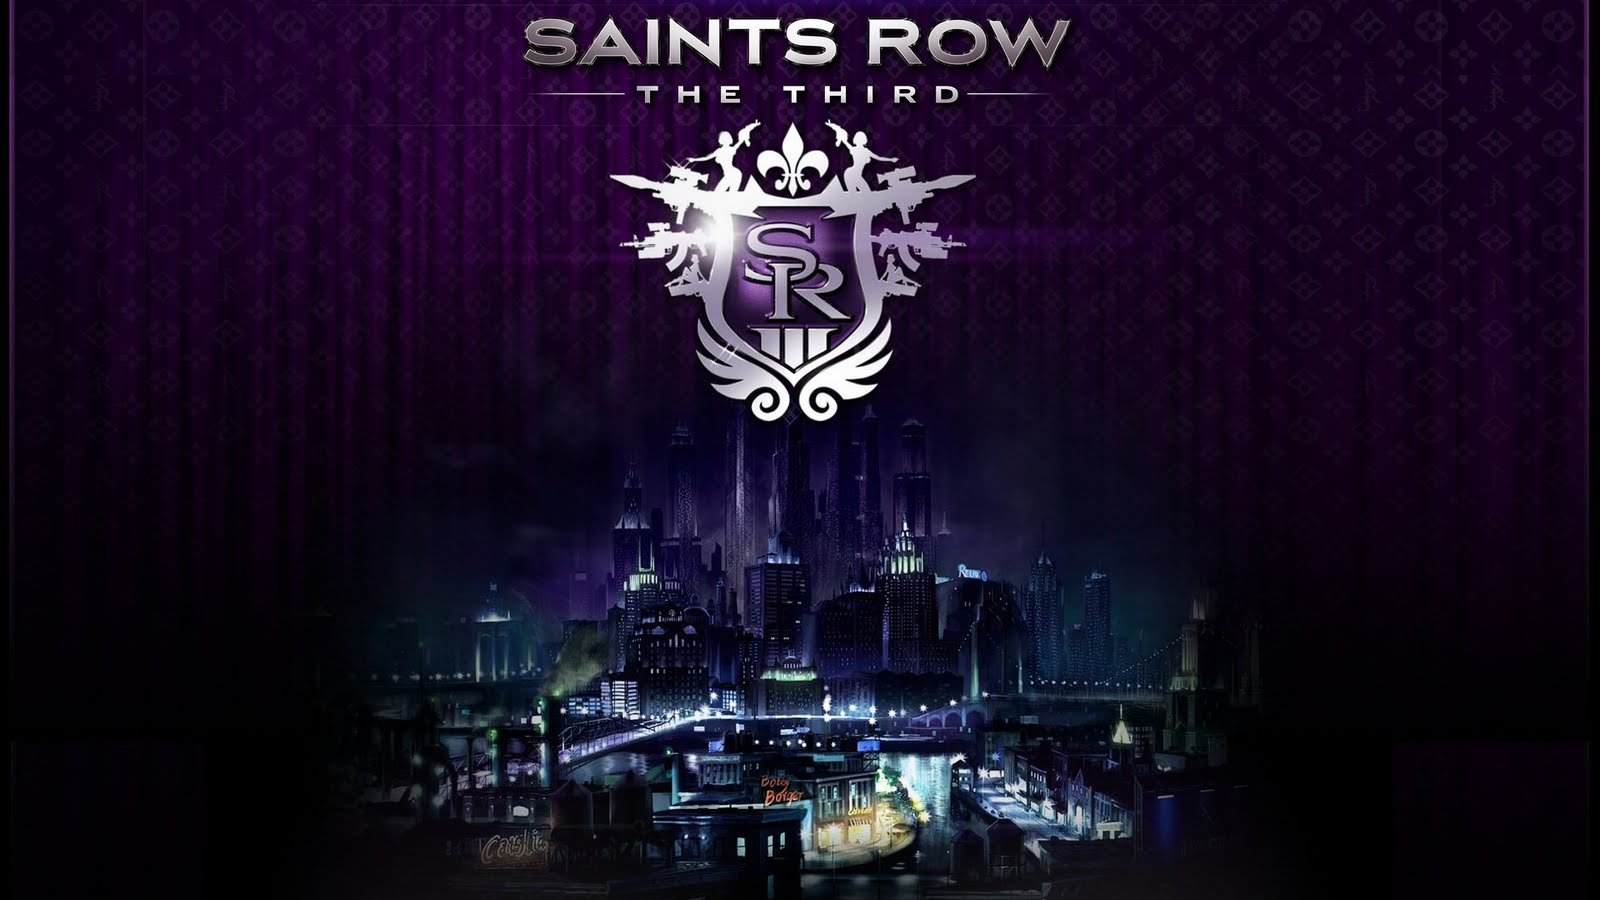 saints row iv artwork wallpapers - 12 Saints Row IV HD Wallpapers Backgrounds Wallpaper